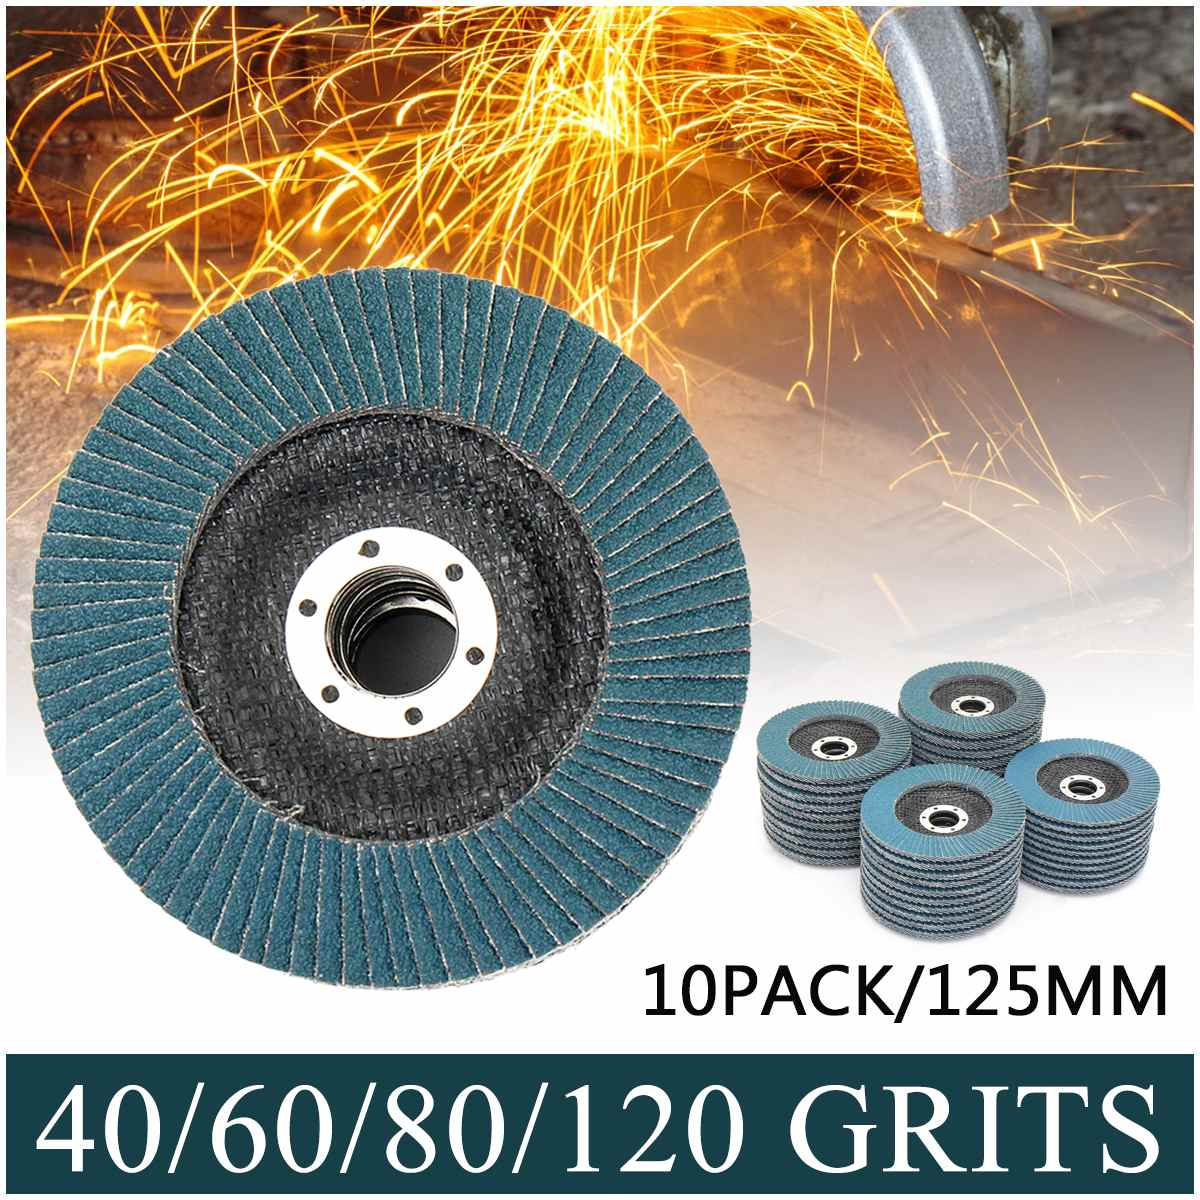 10PCS Professional Flap Discs 125mm 5 Inch Sanding Discs 40/60/80/120 Grit Grinding Wheels Blades For Angle Grinder